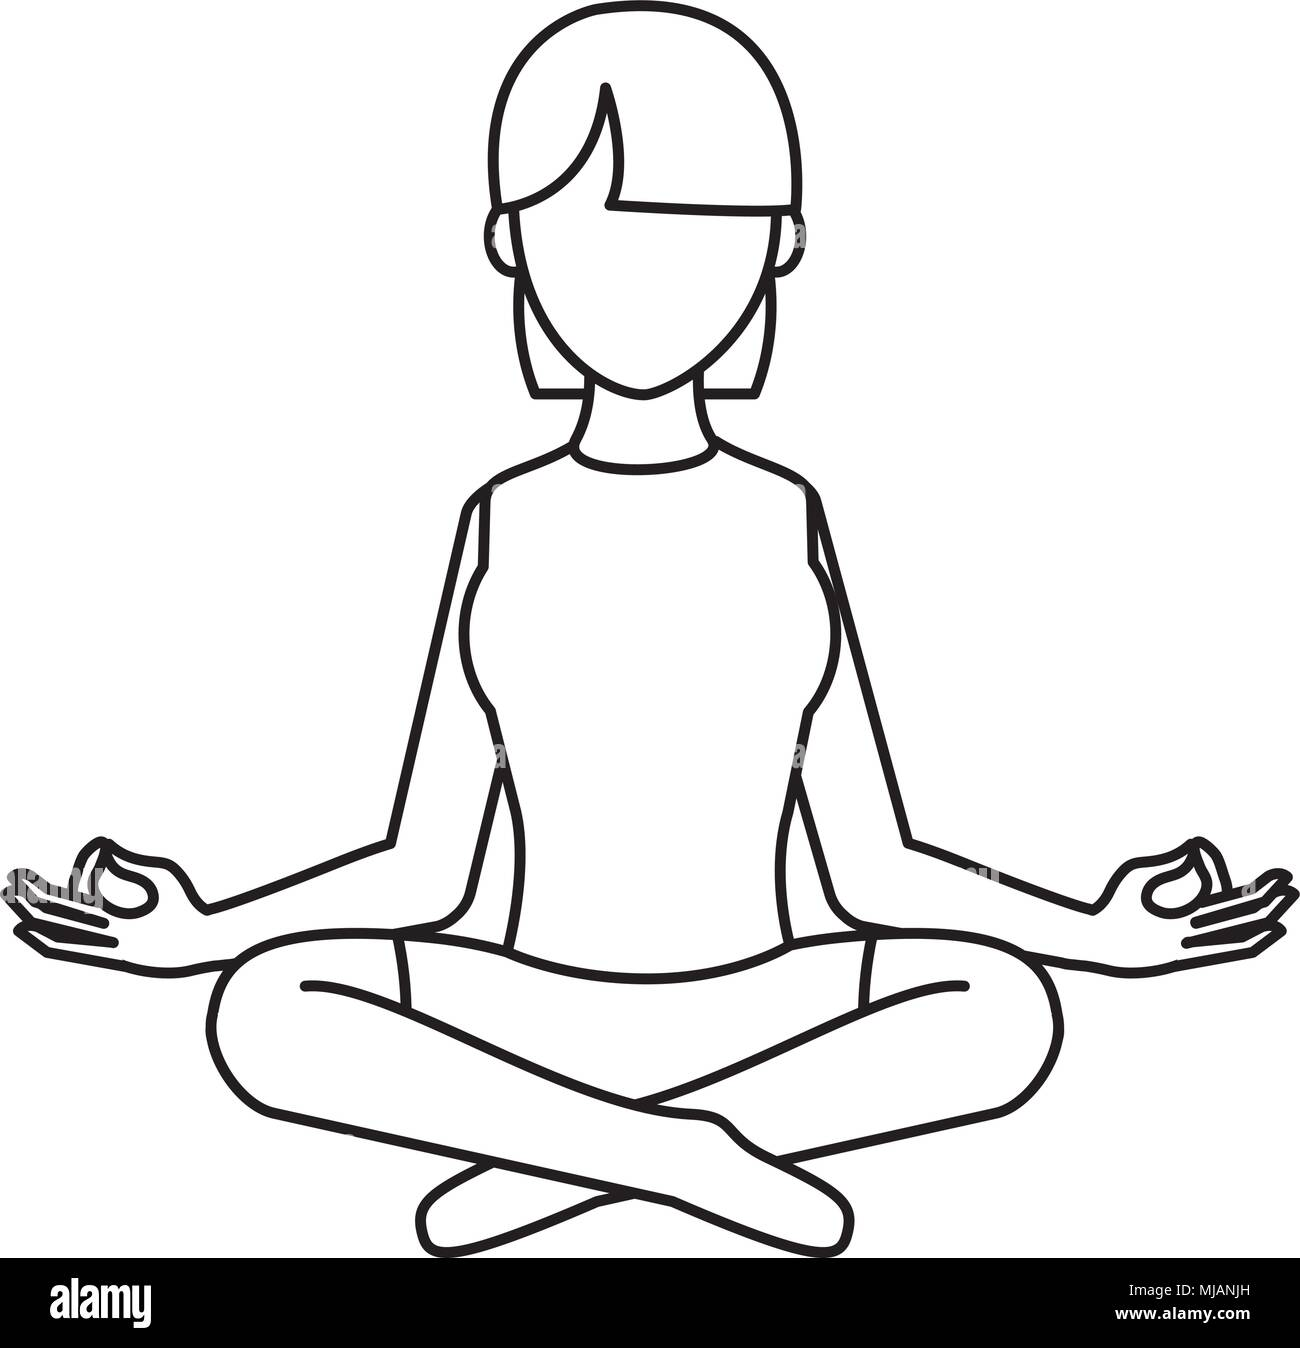 line woman sitting with yoga relaxation position - Stock Vector